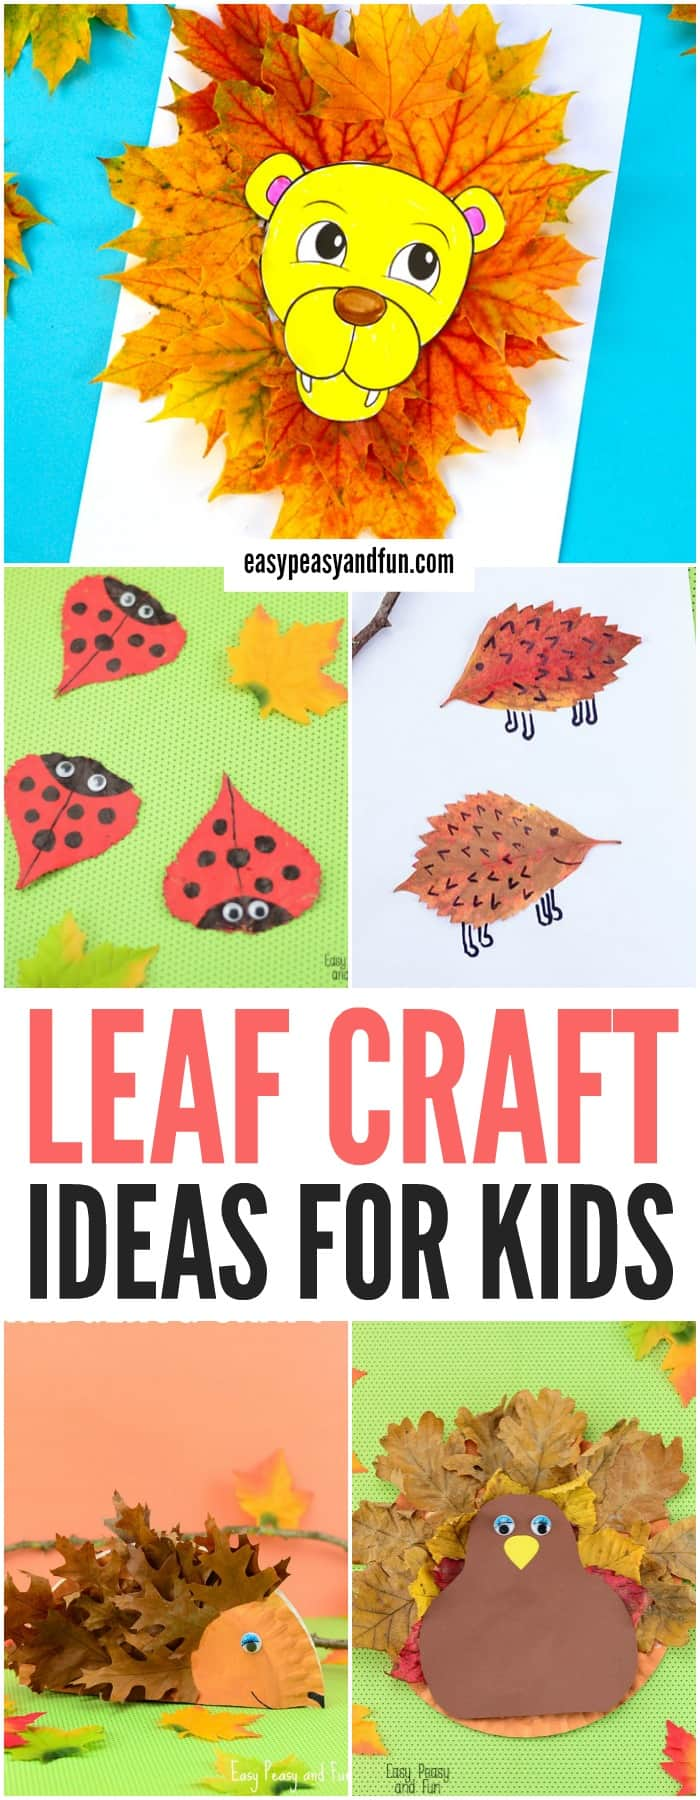 Leaf crafts for kids. Super fun Fall craft activities for kids to make.